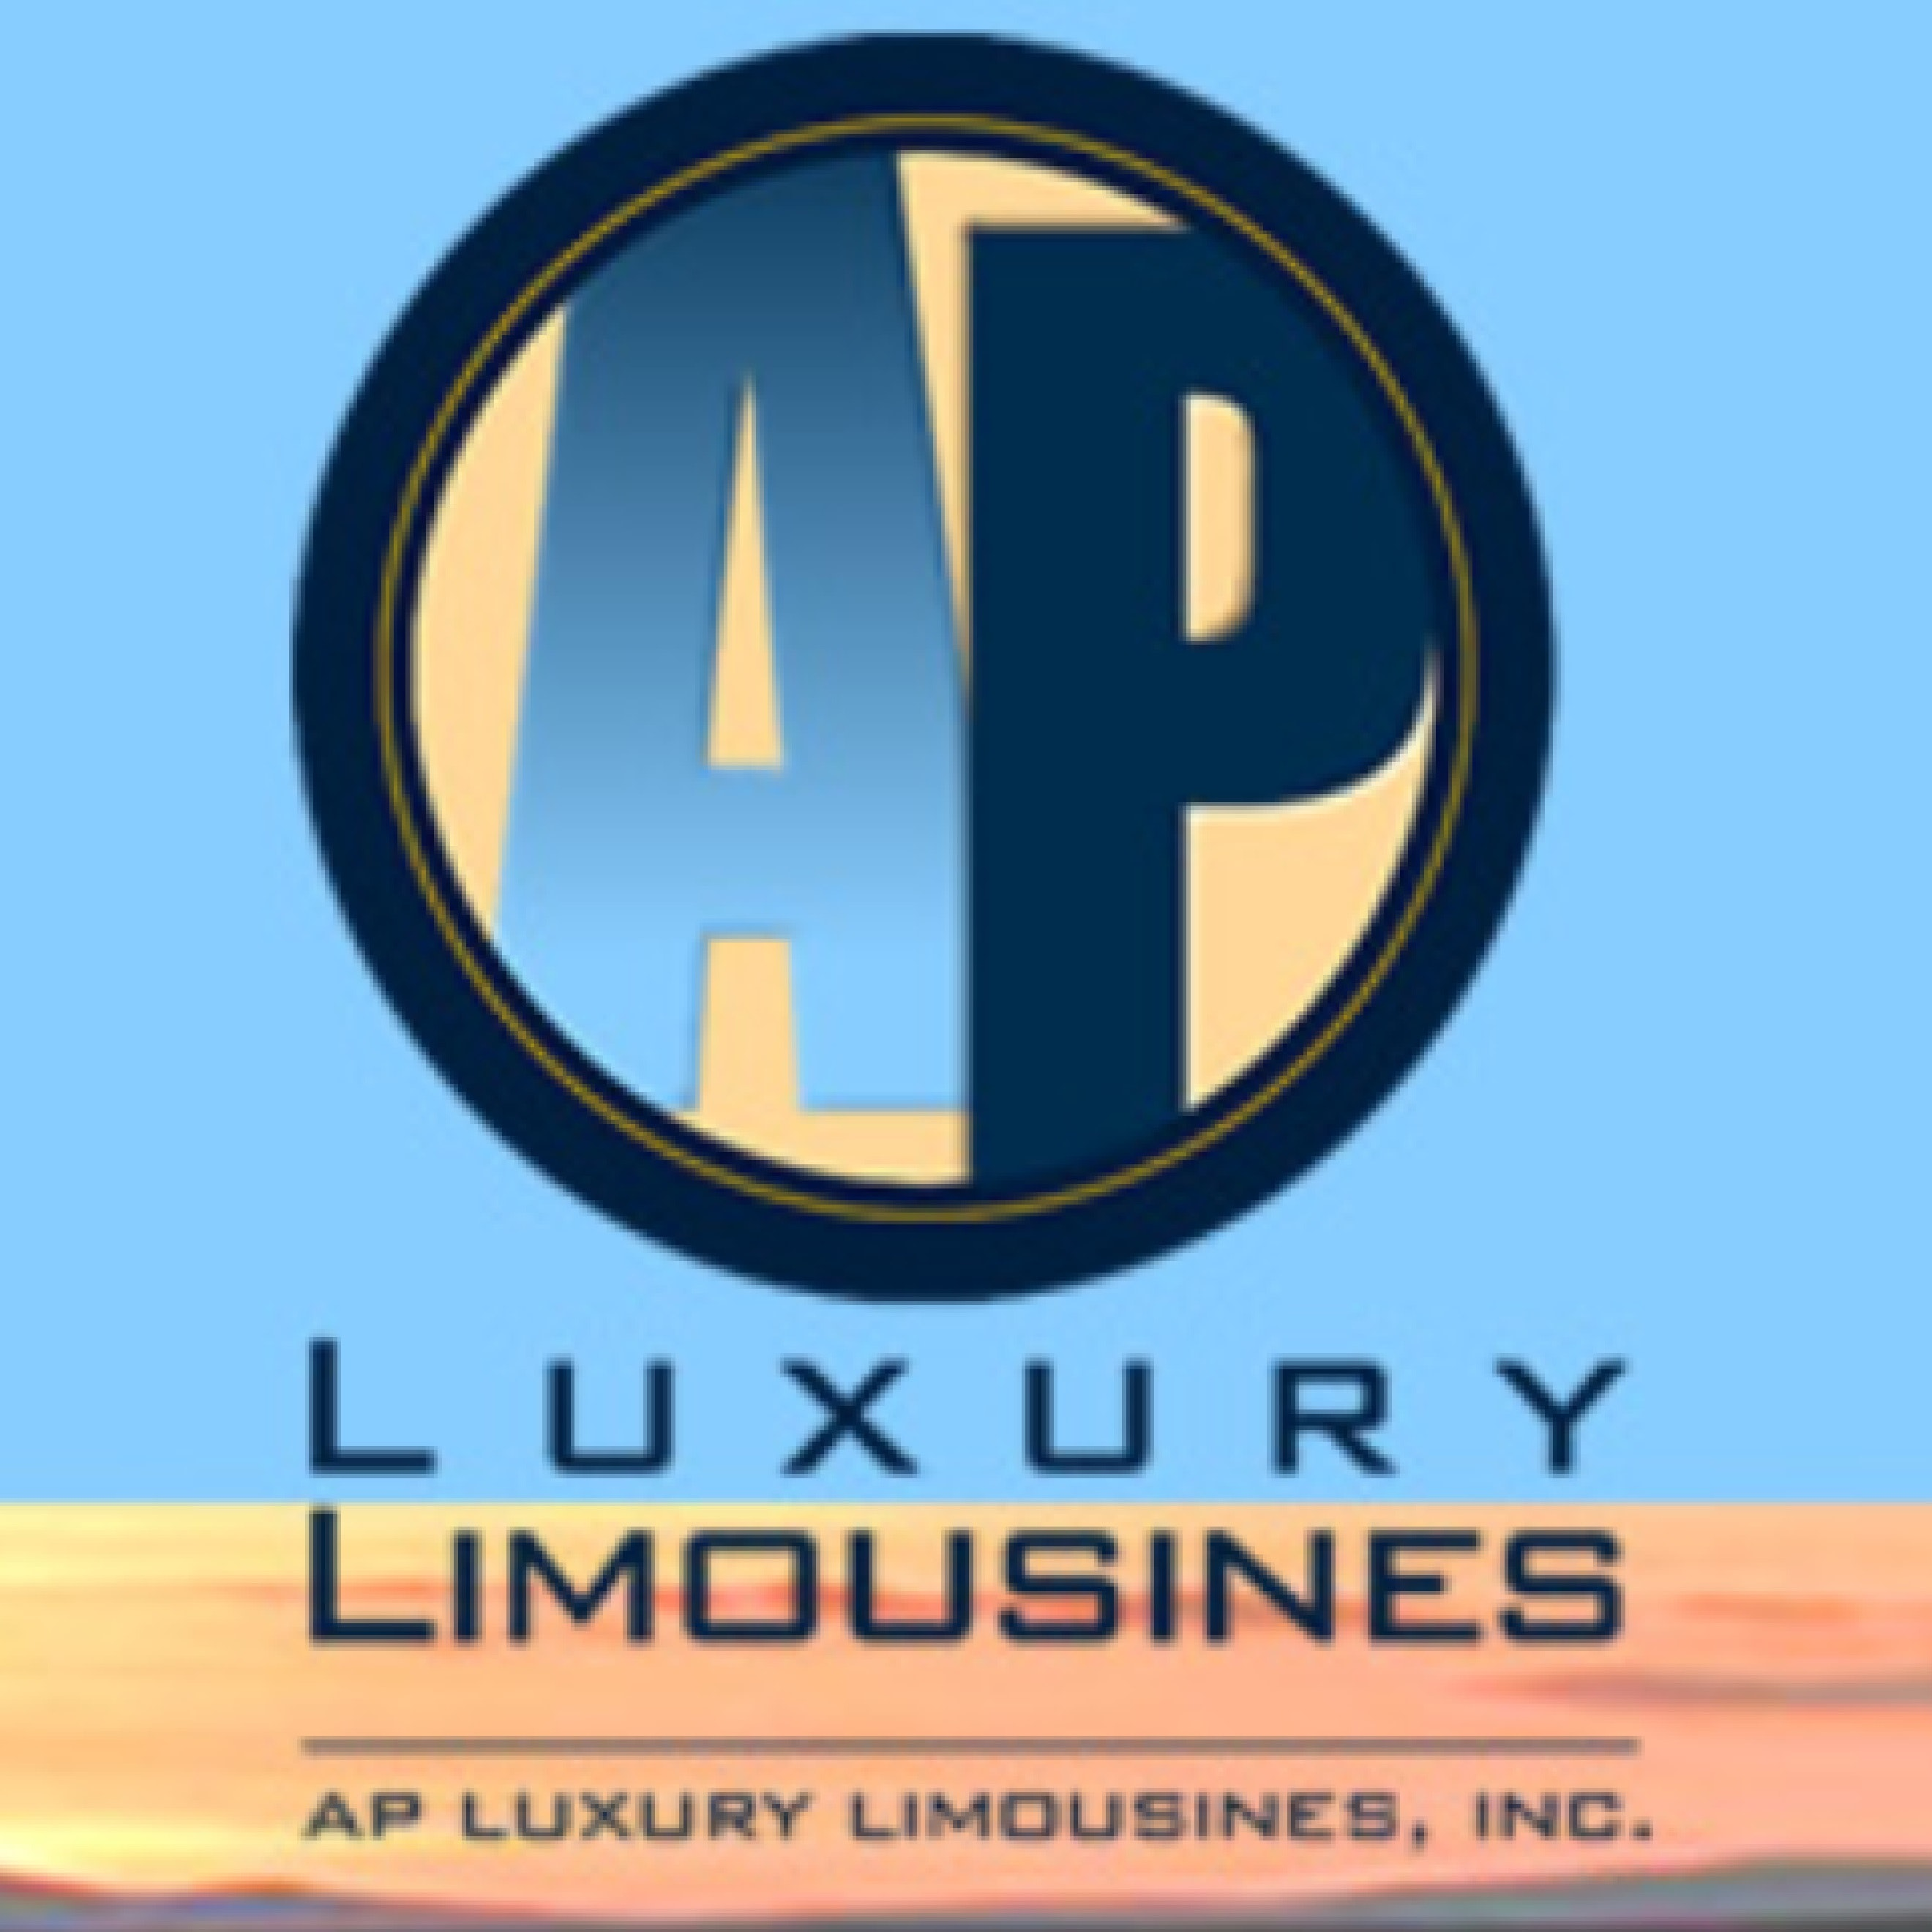 AP Luxury Limousines logo